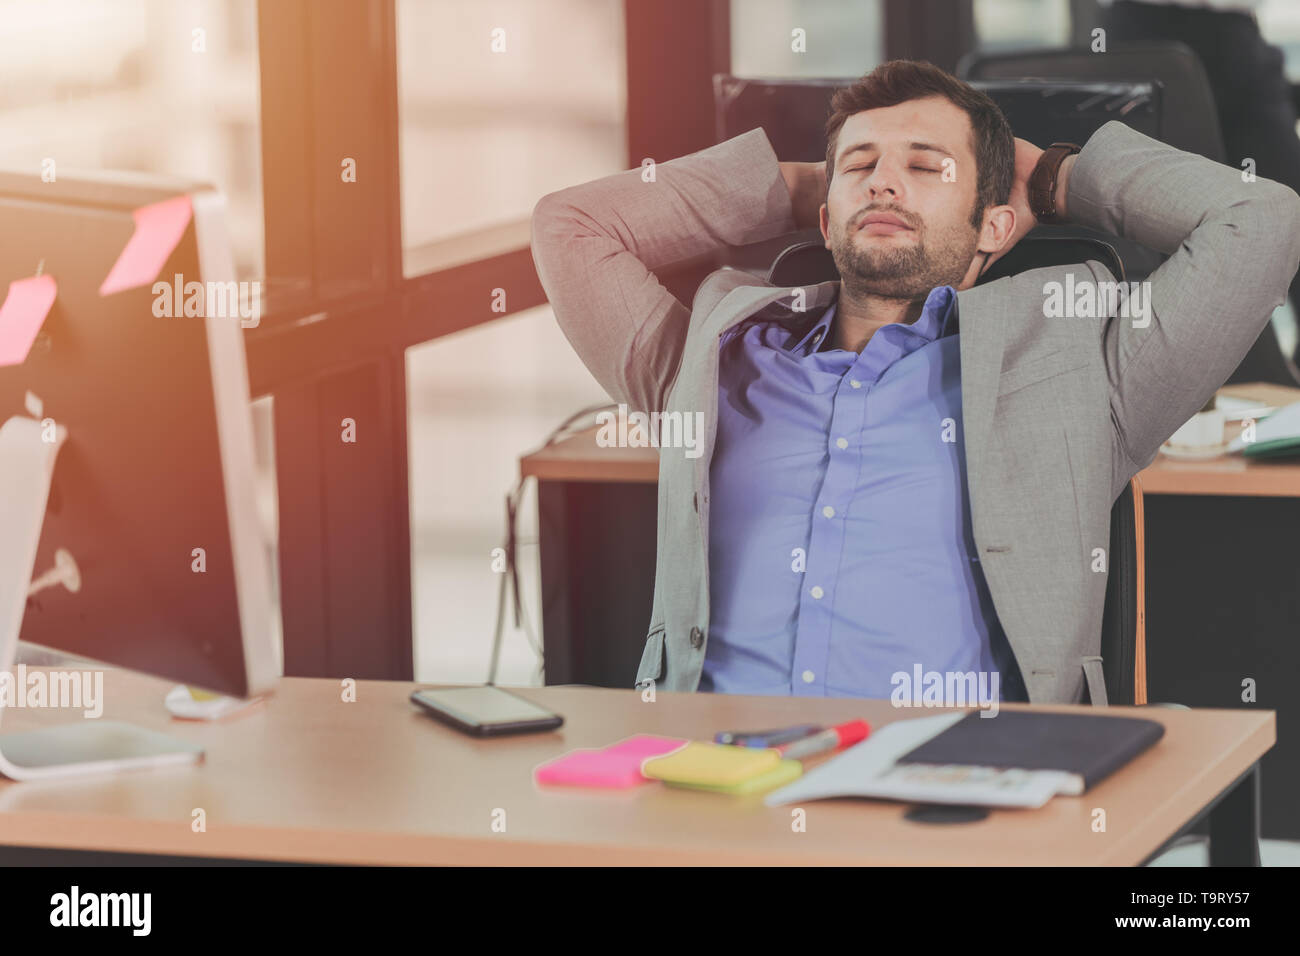 businessman relaxing rest nap after hard work day in the office - Stock Image